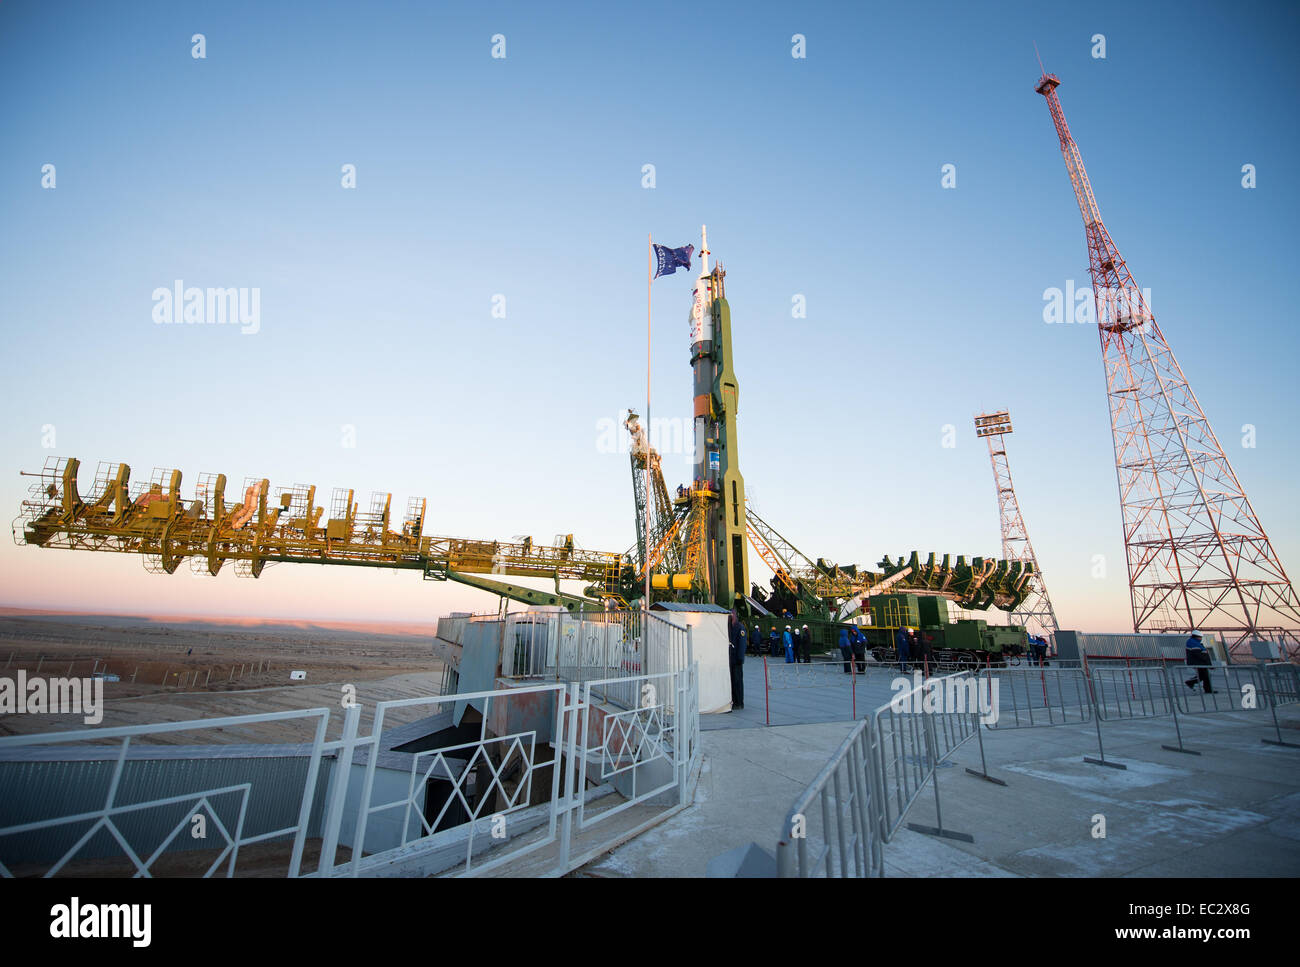 The Soyuz TMA-15M spacecraft is seen after being raised into a vertical position on the launch pad on Friday, Nov. - Stock Image